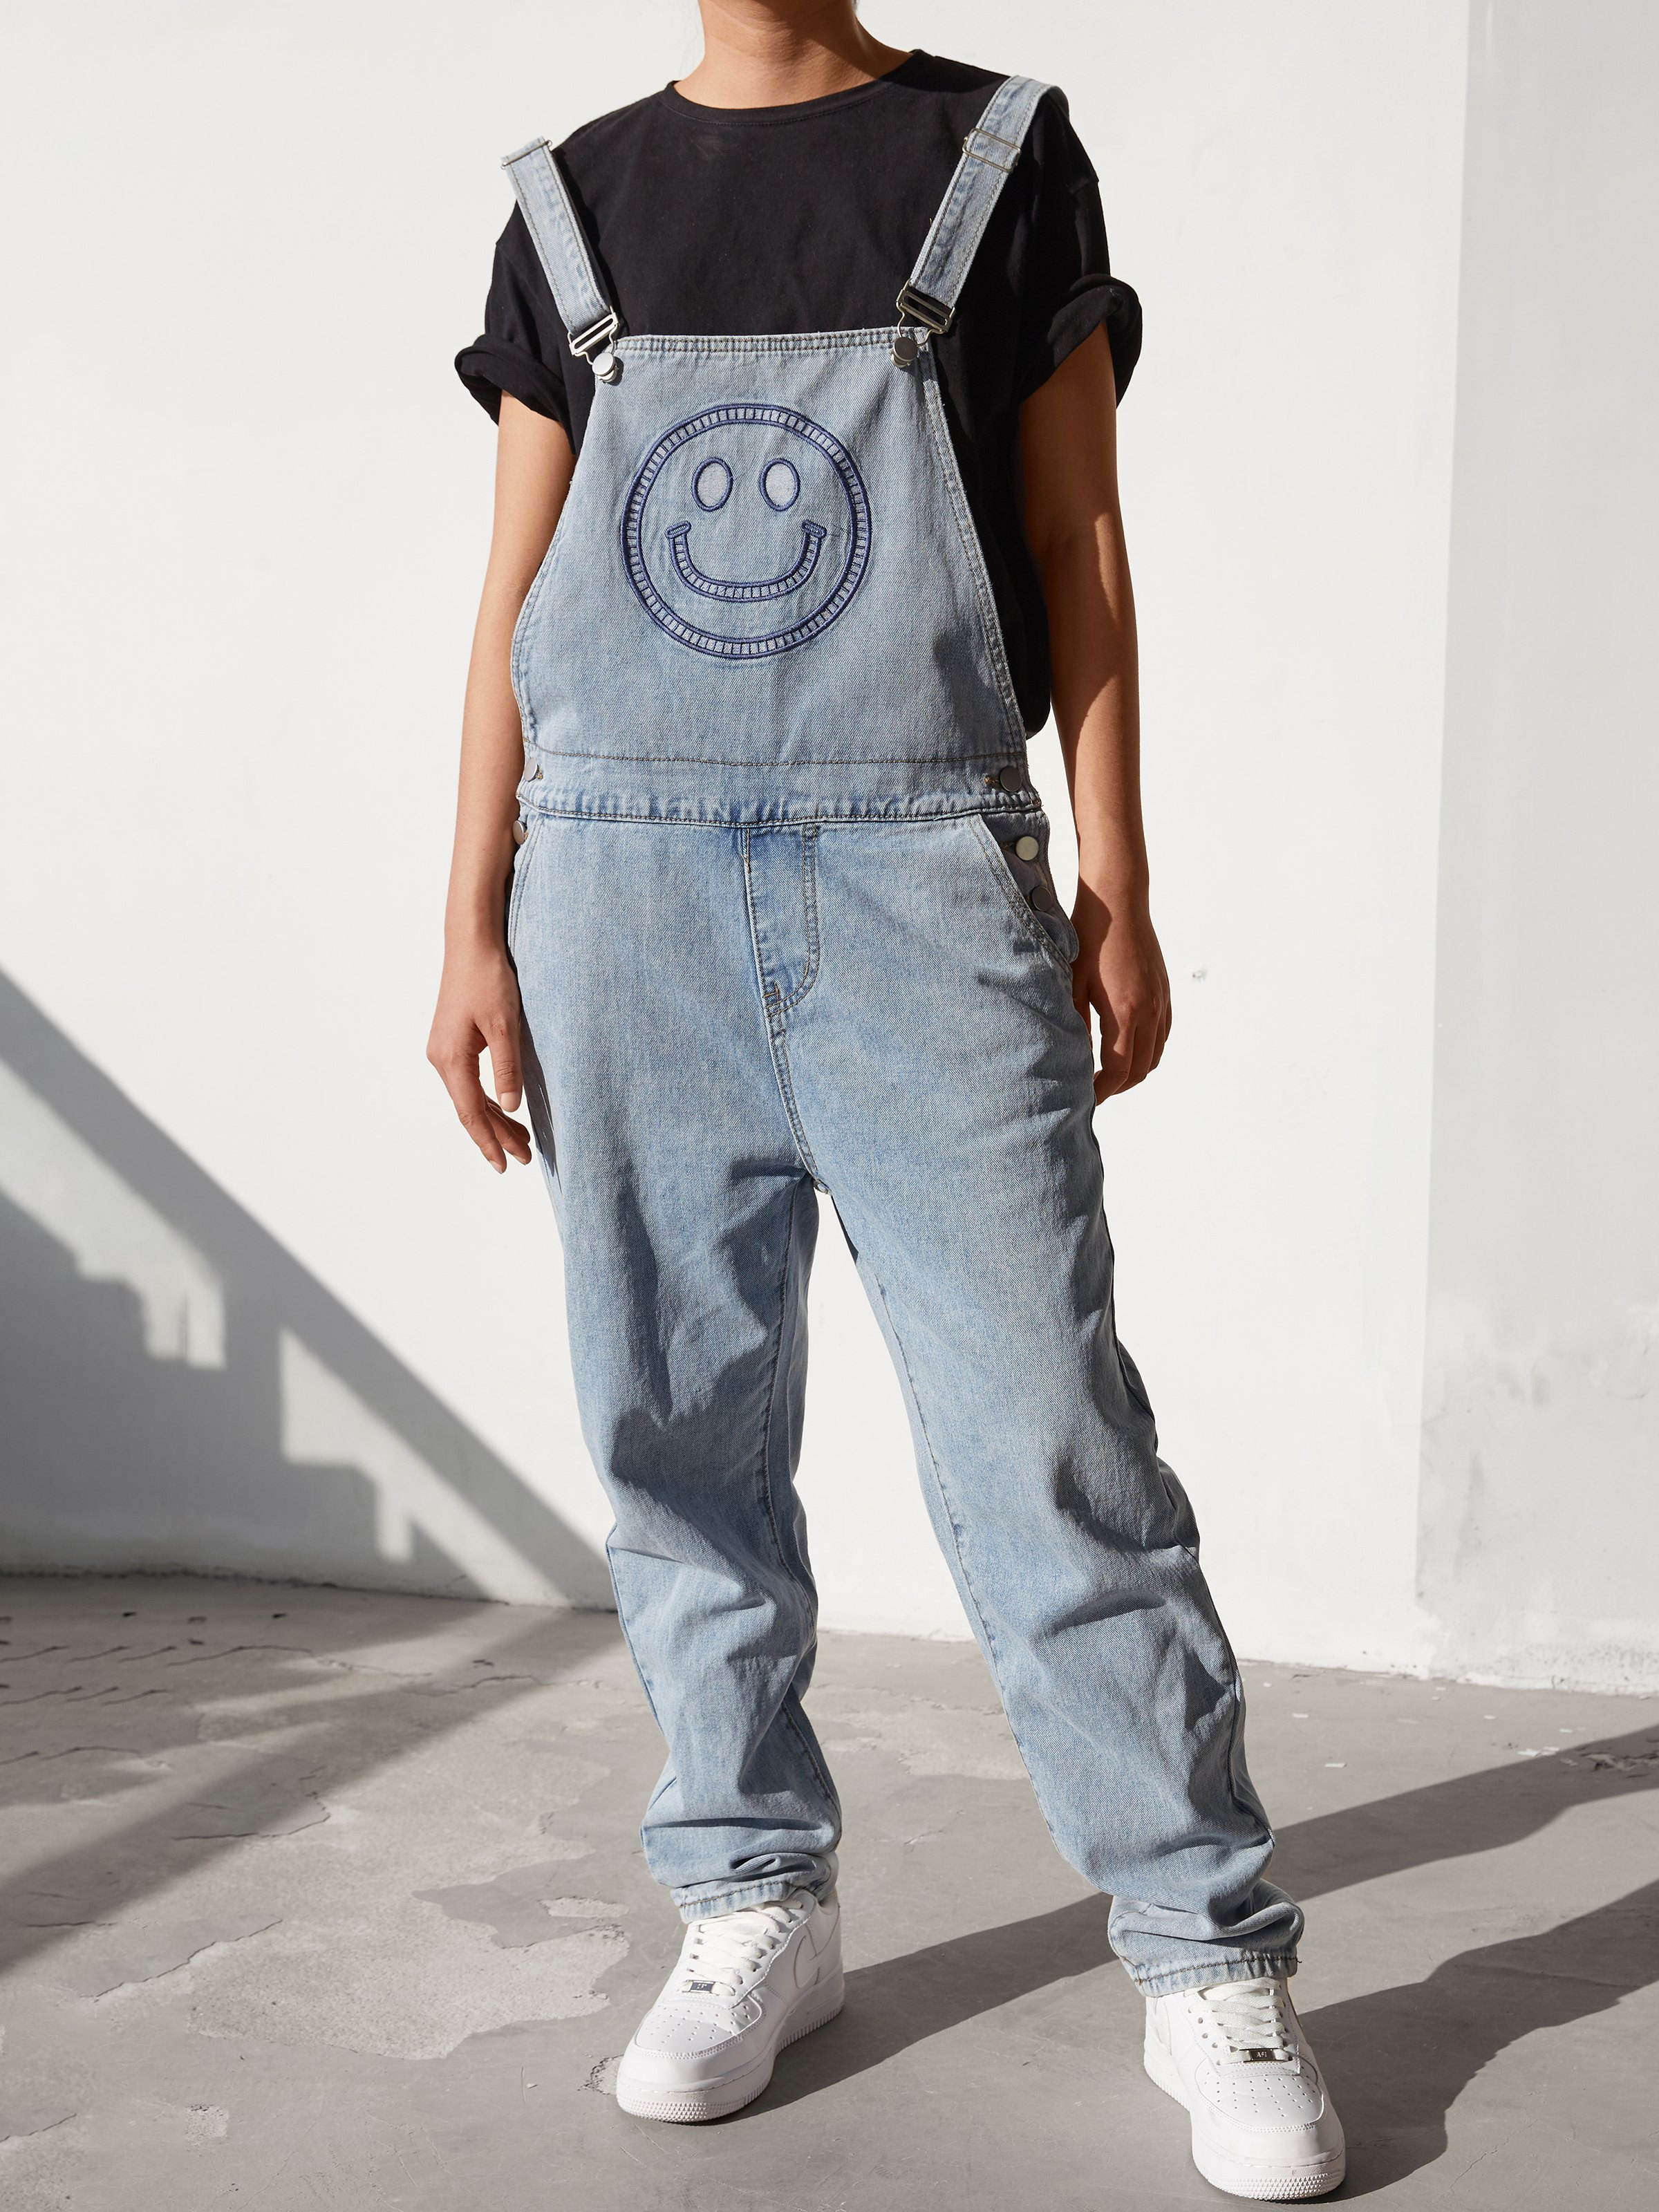 Smiley Face Embroidered Overall - Blue S